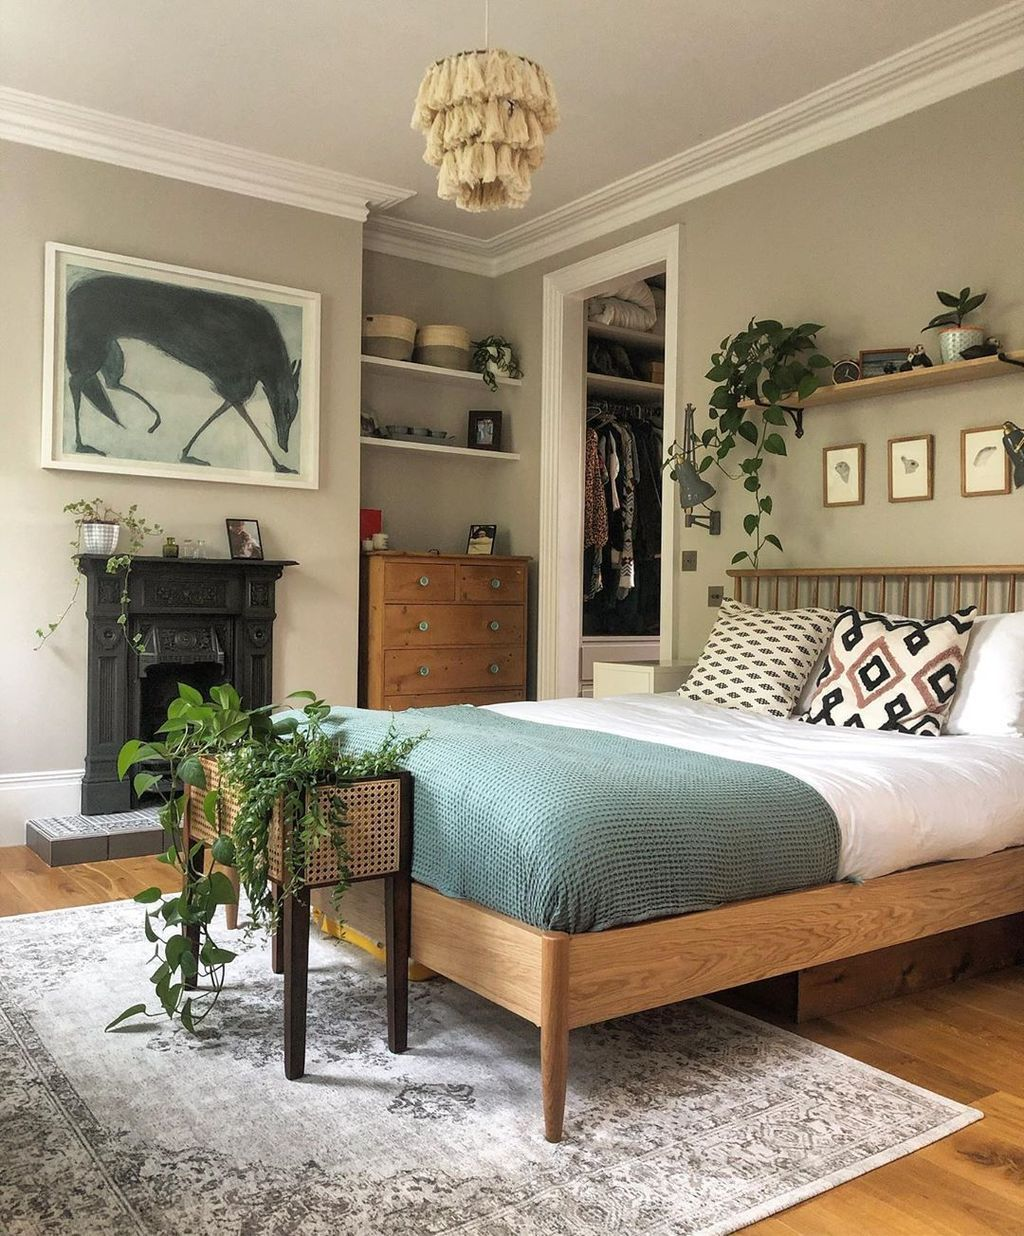 Amazing Bedroom With Fireplace Design Ideas Perfect For This Winter Bedroom Interior Bedroom Decor Bedroom Design